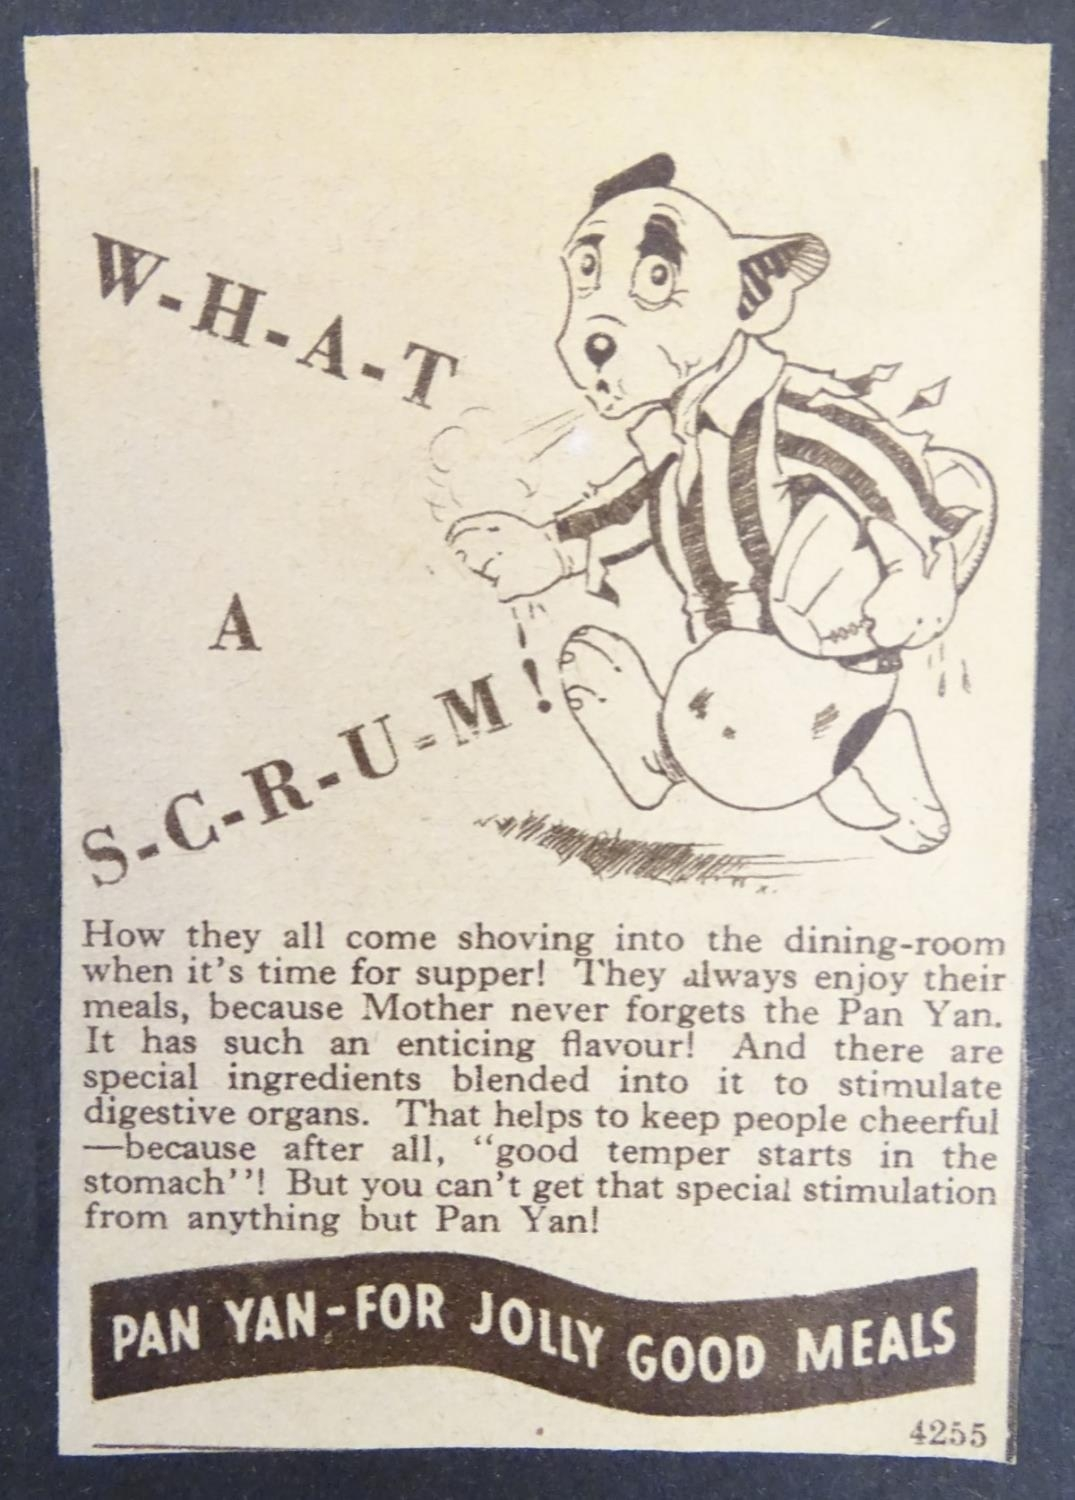 A 20thC newspaper advertisement for Pan Yan Pickle featuring Bonzo the dog designed by the British - Image 4 of 7